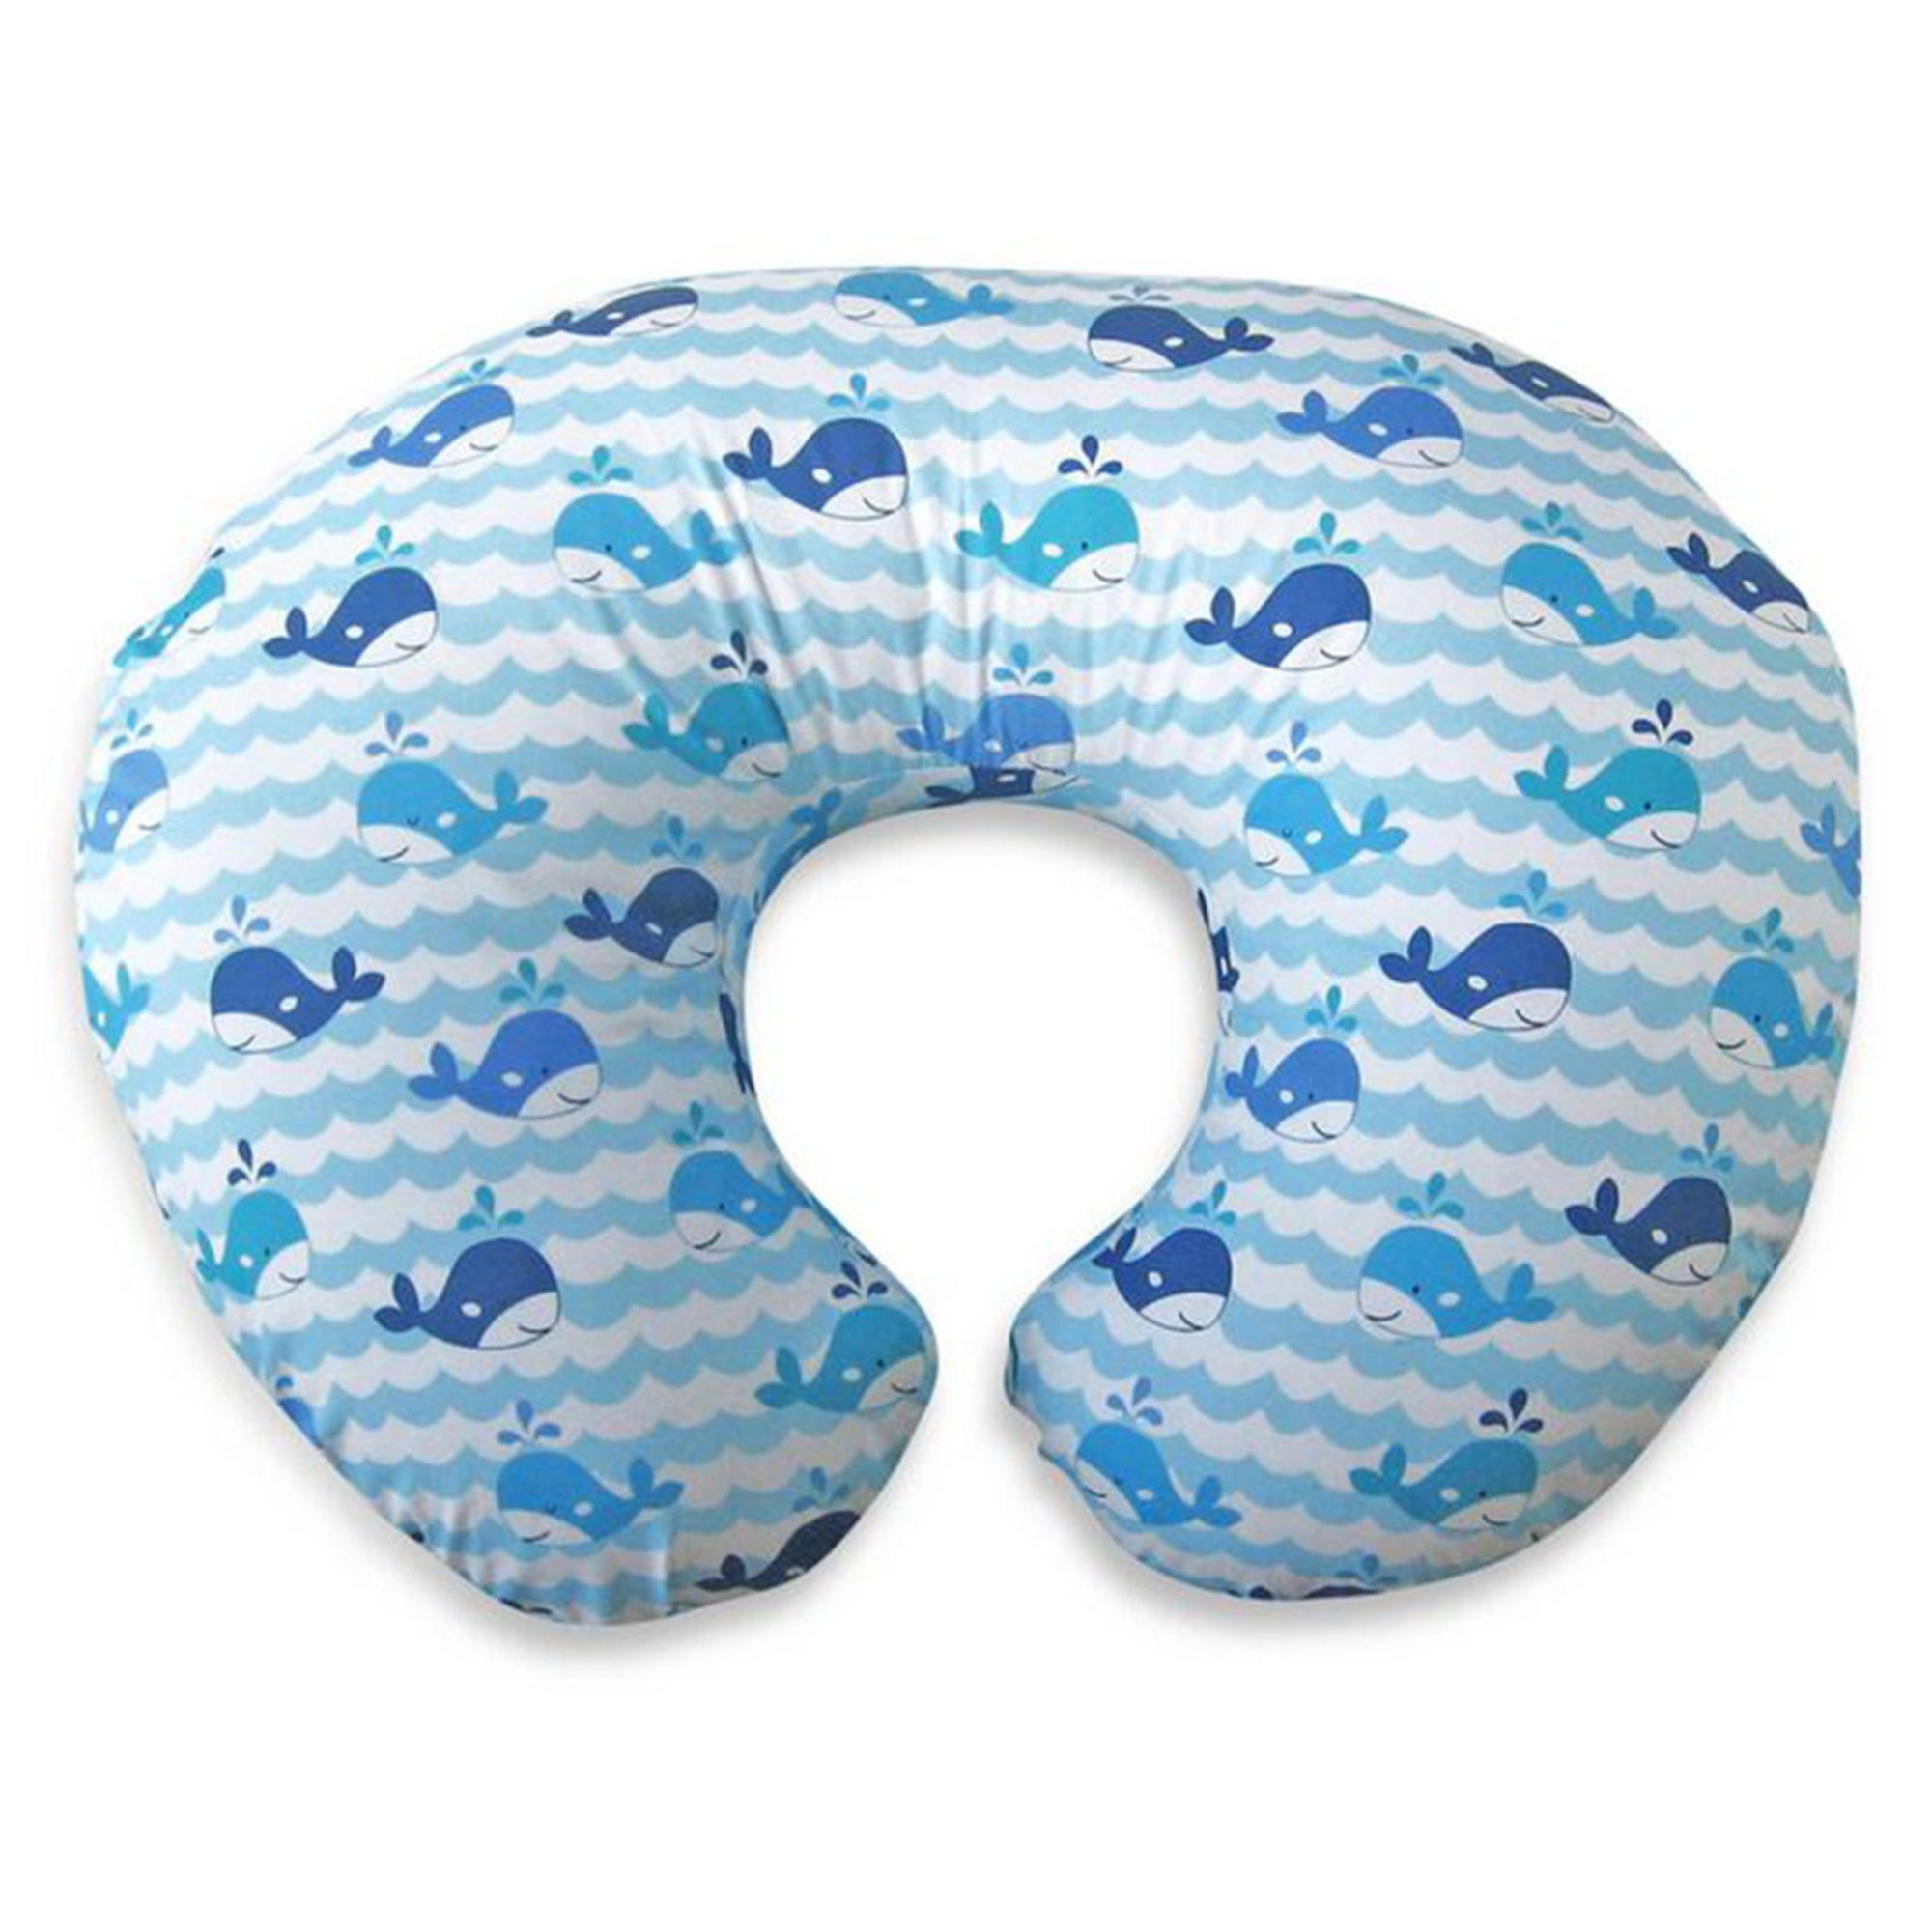 boppy pillow with whale watch slipcover baby supports u0026 pillows